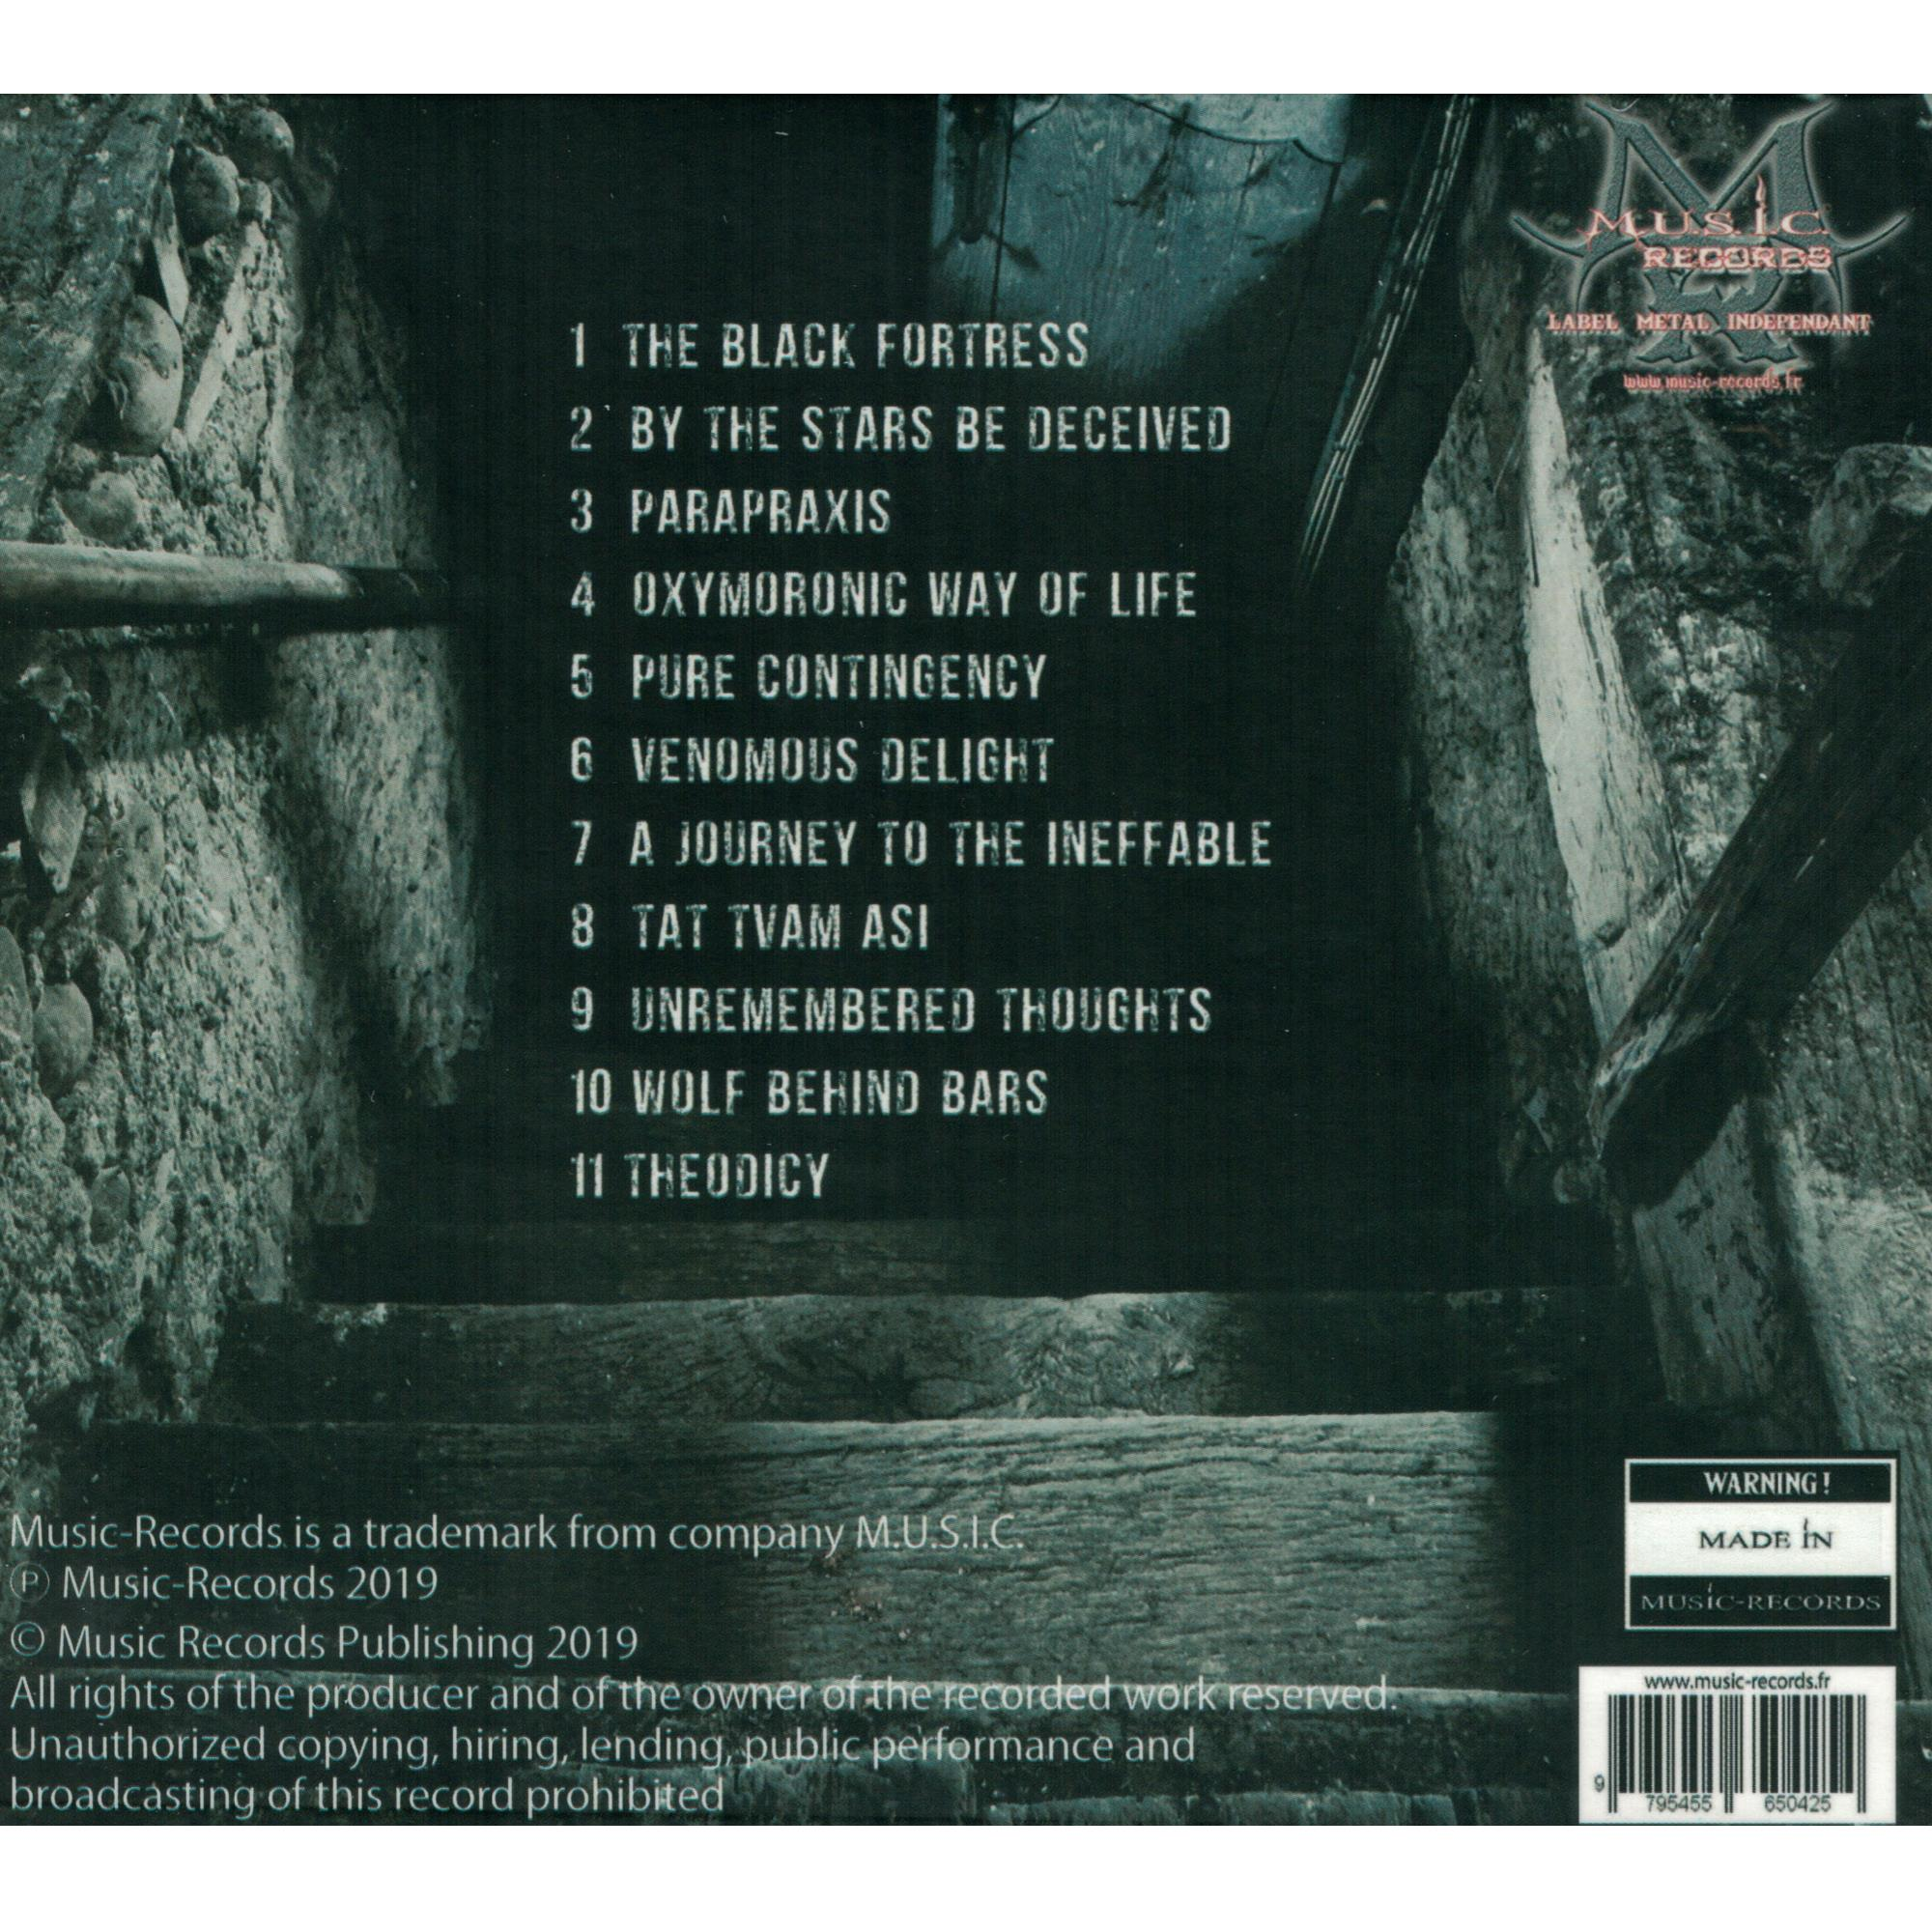 The Black Fortress CD